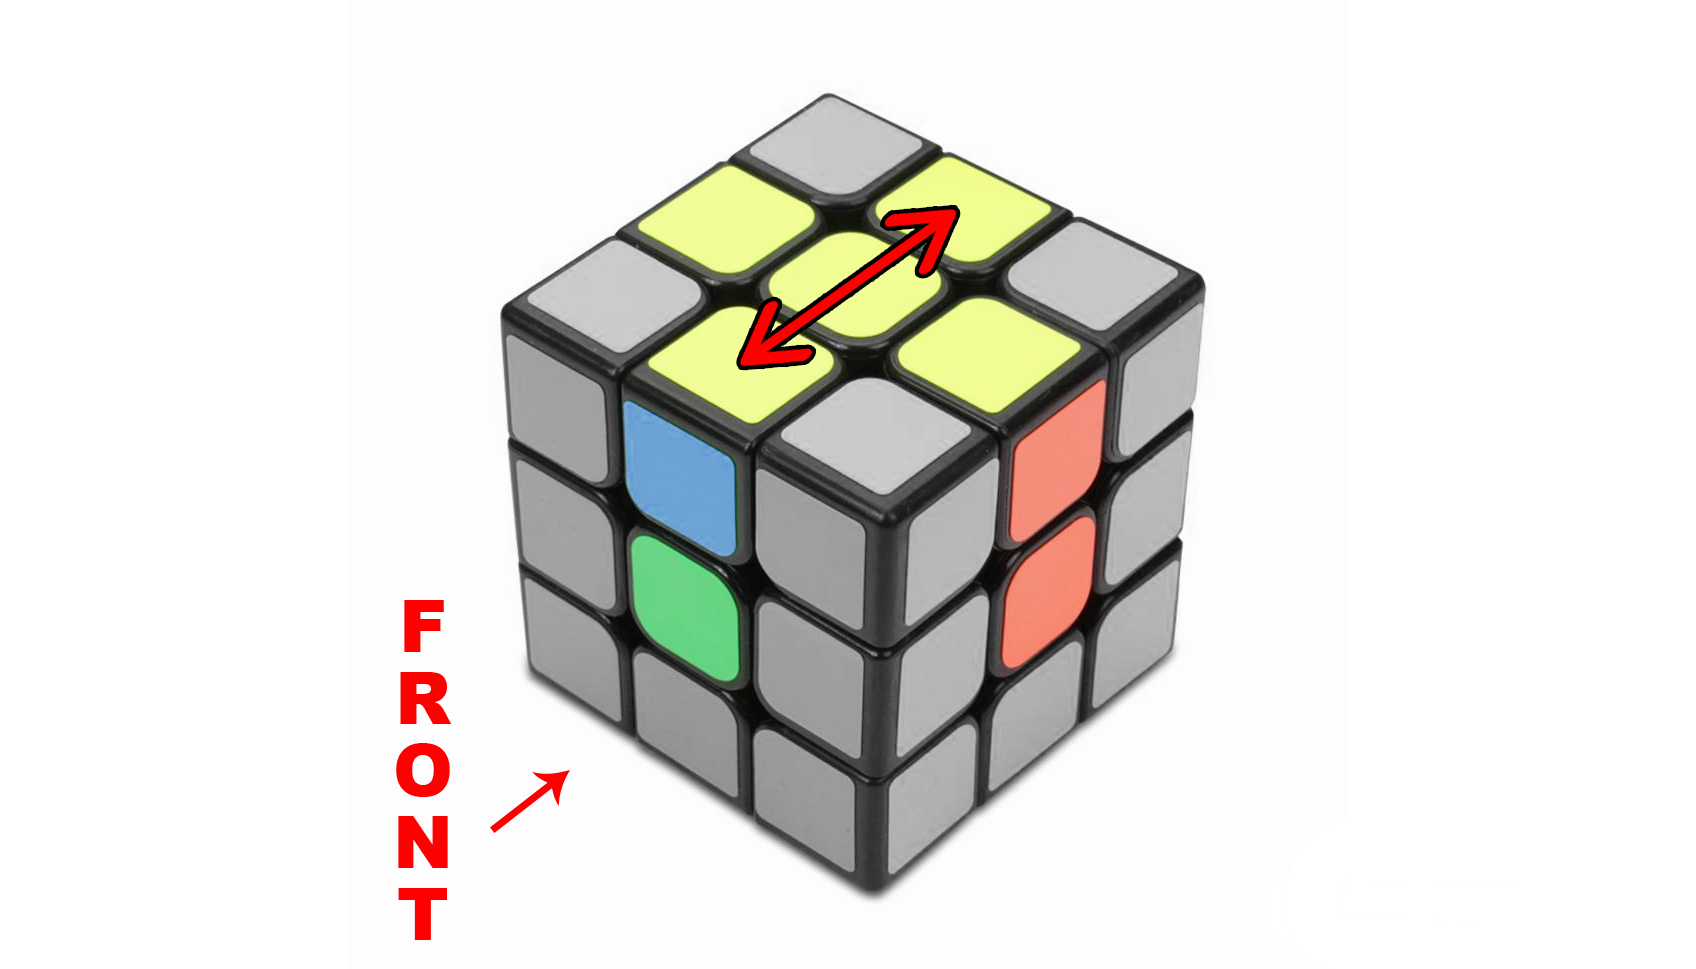 How to solve a Rubik's 3x3 - Step 1 - The Cross - Step 1c